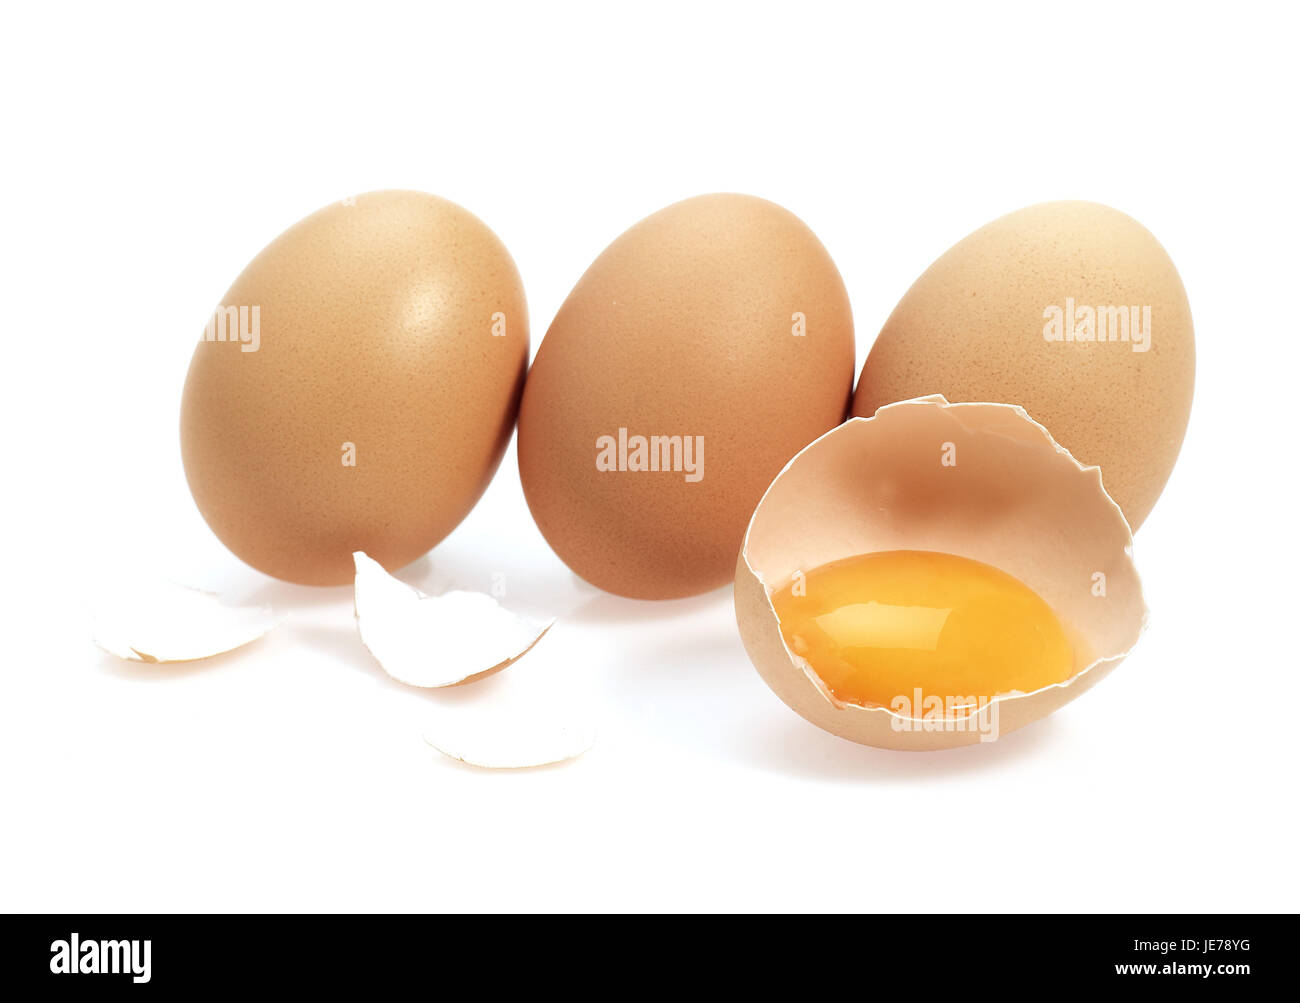 Poultry eggs, white background, - Stock Image